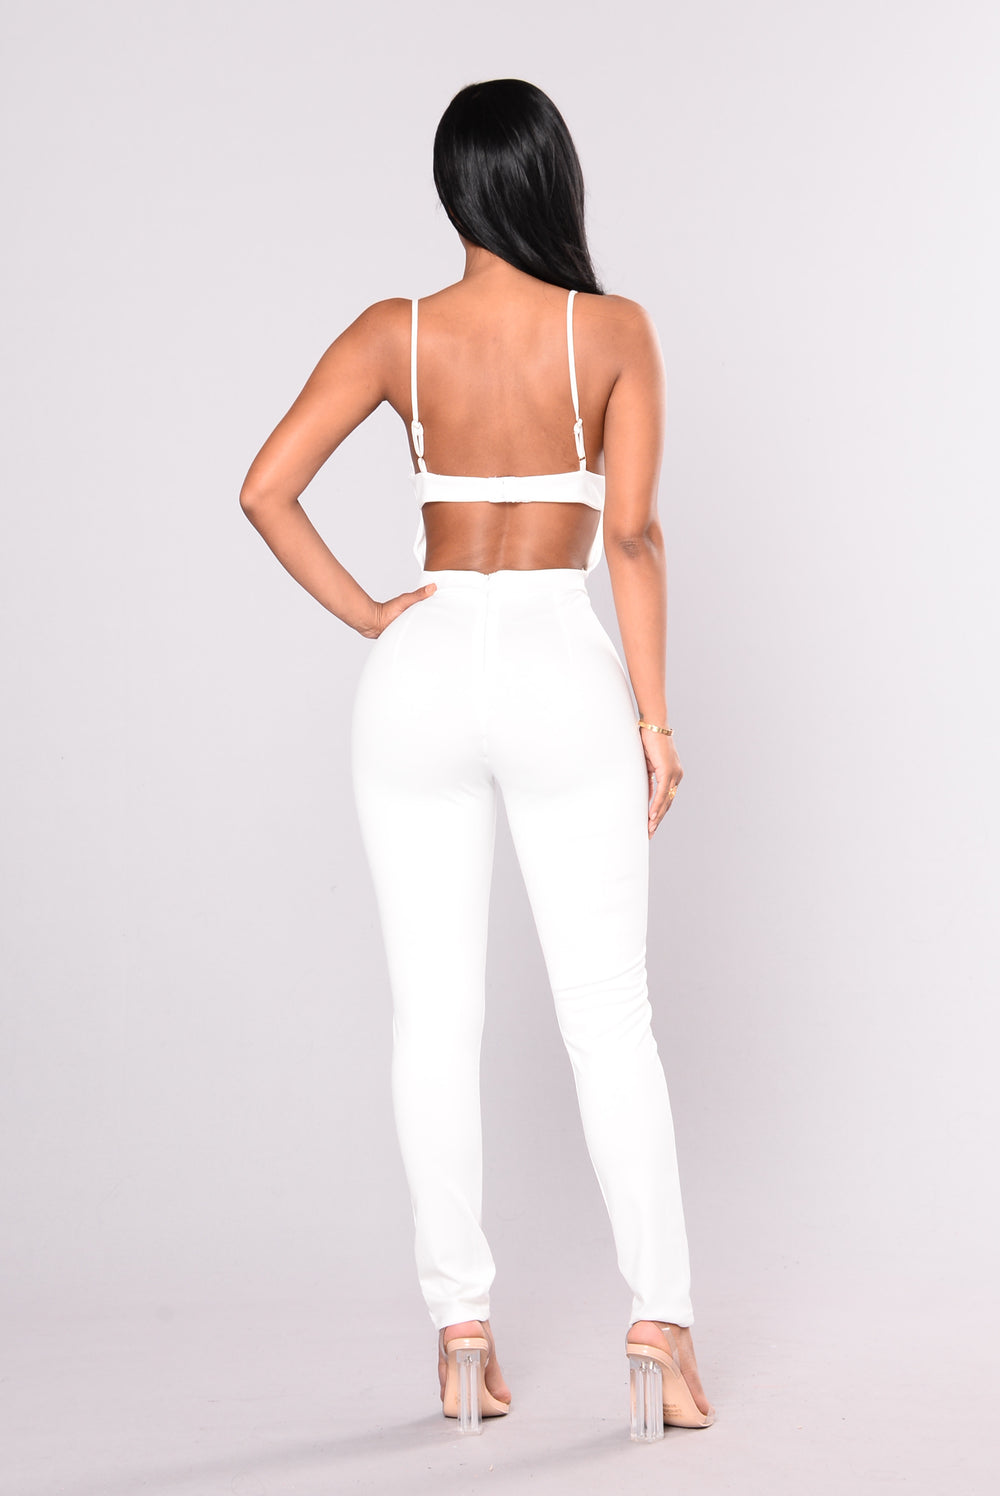 About Your Style Skinny Leg Jumpsuit - White